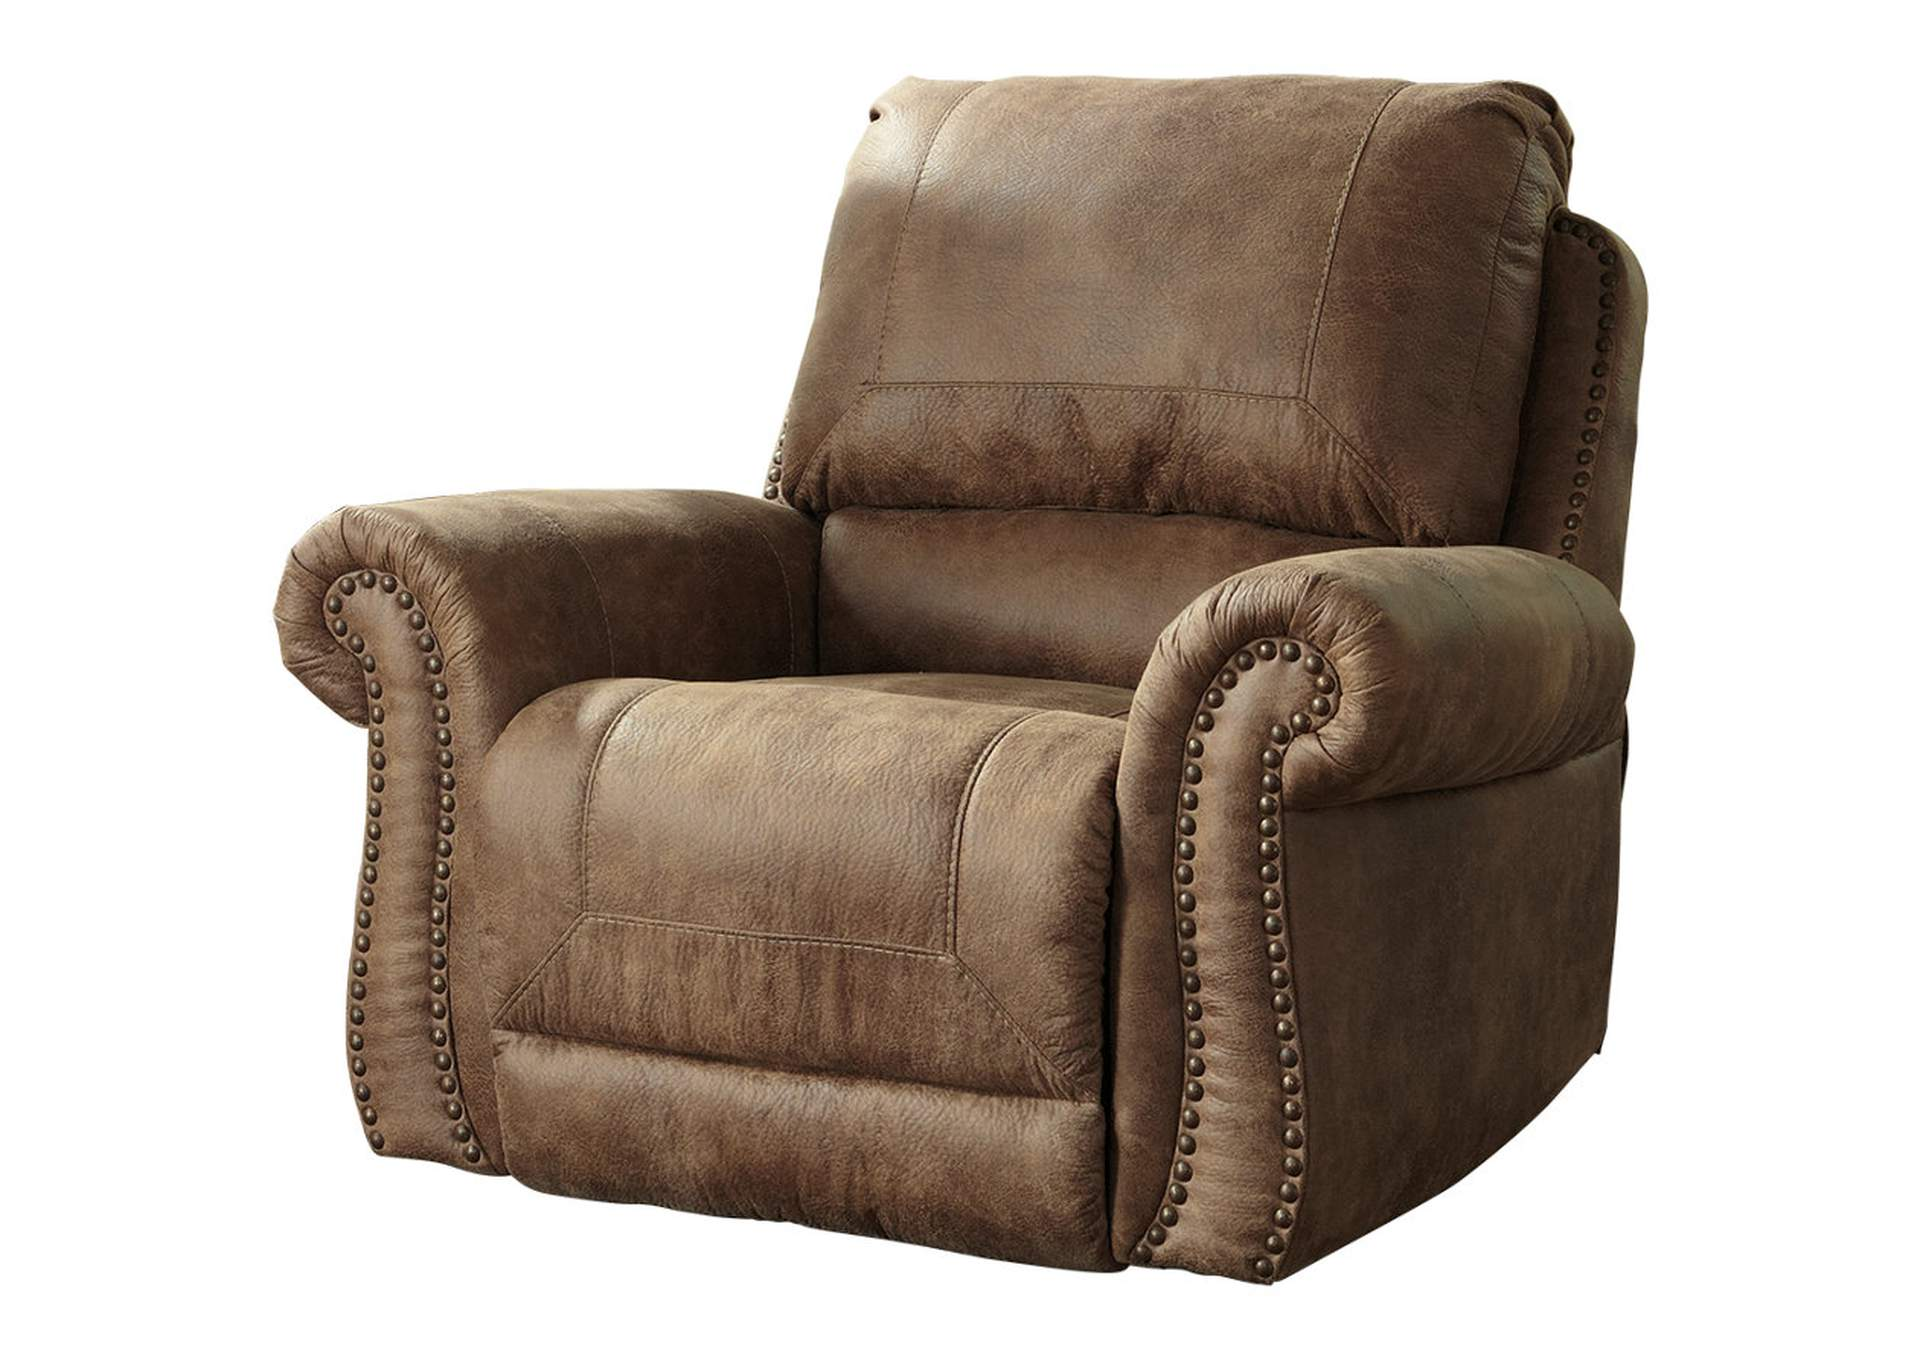 Larkinhurst Earth Rocker Recliner,Signature Design By Ashley